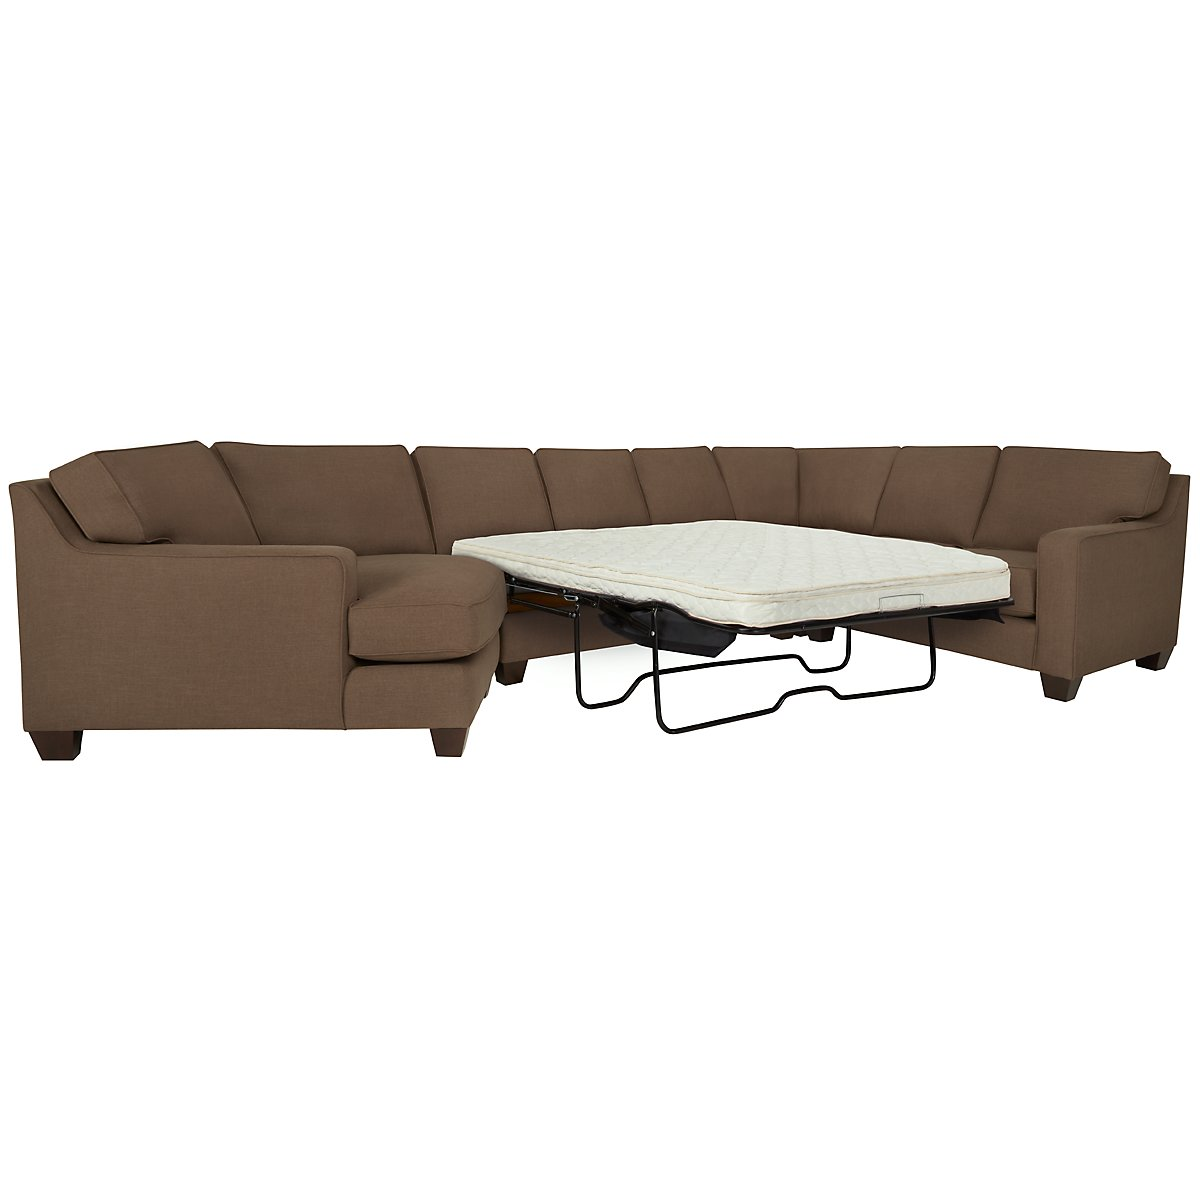 York Dark Brown Fabric Small Left Cuddler Innerspring Sleeper Sectional